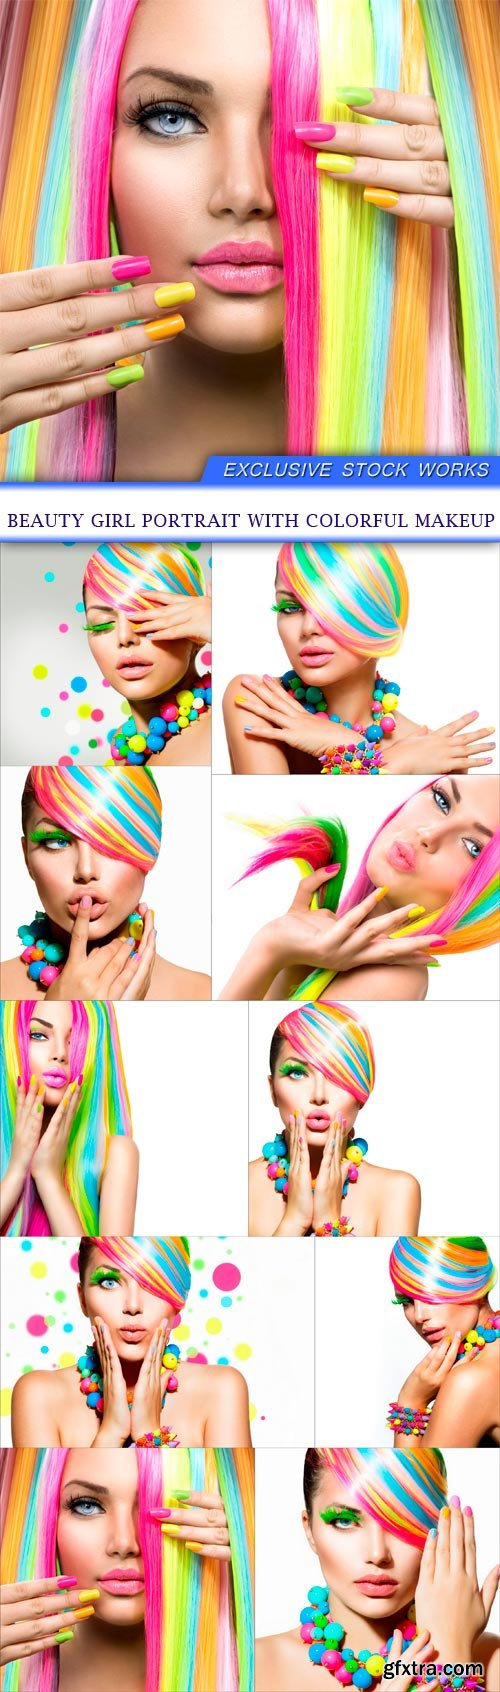 Beauty Girl Portrait with Colorful Makeup 10X JPEG